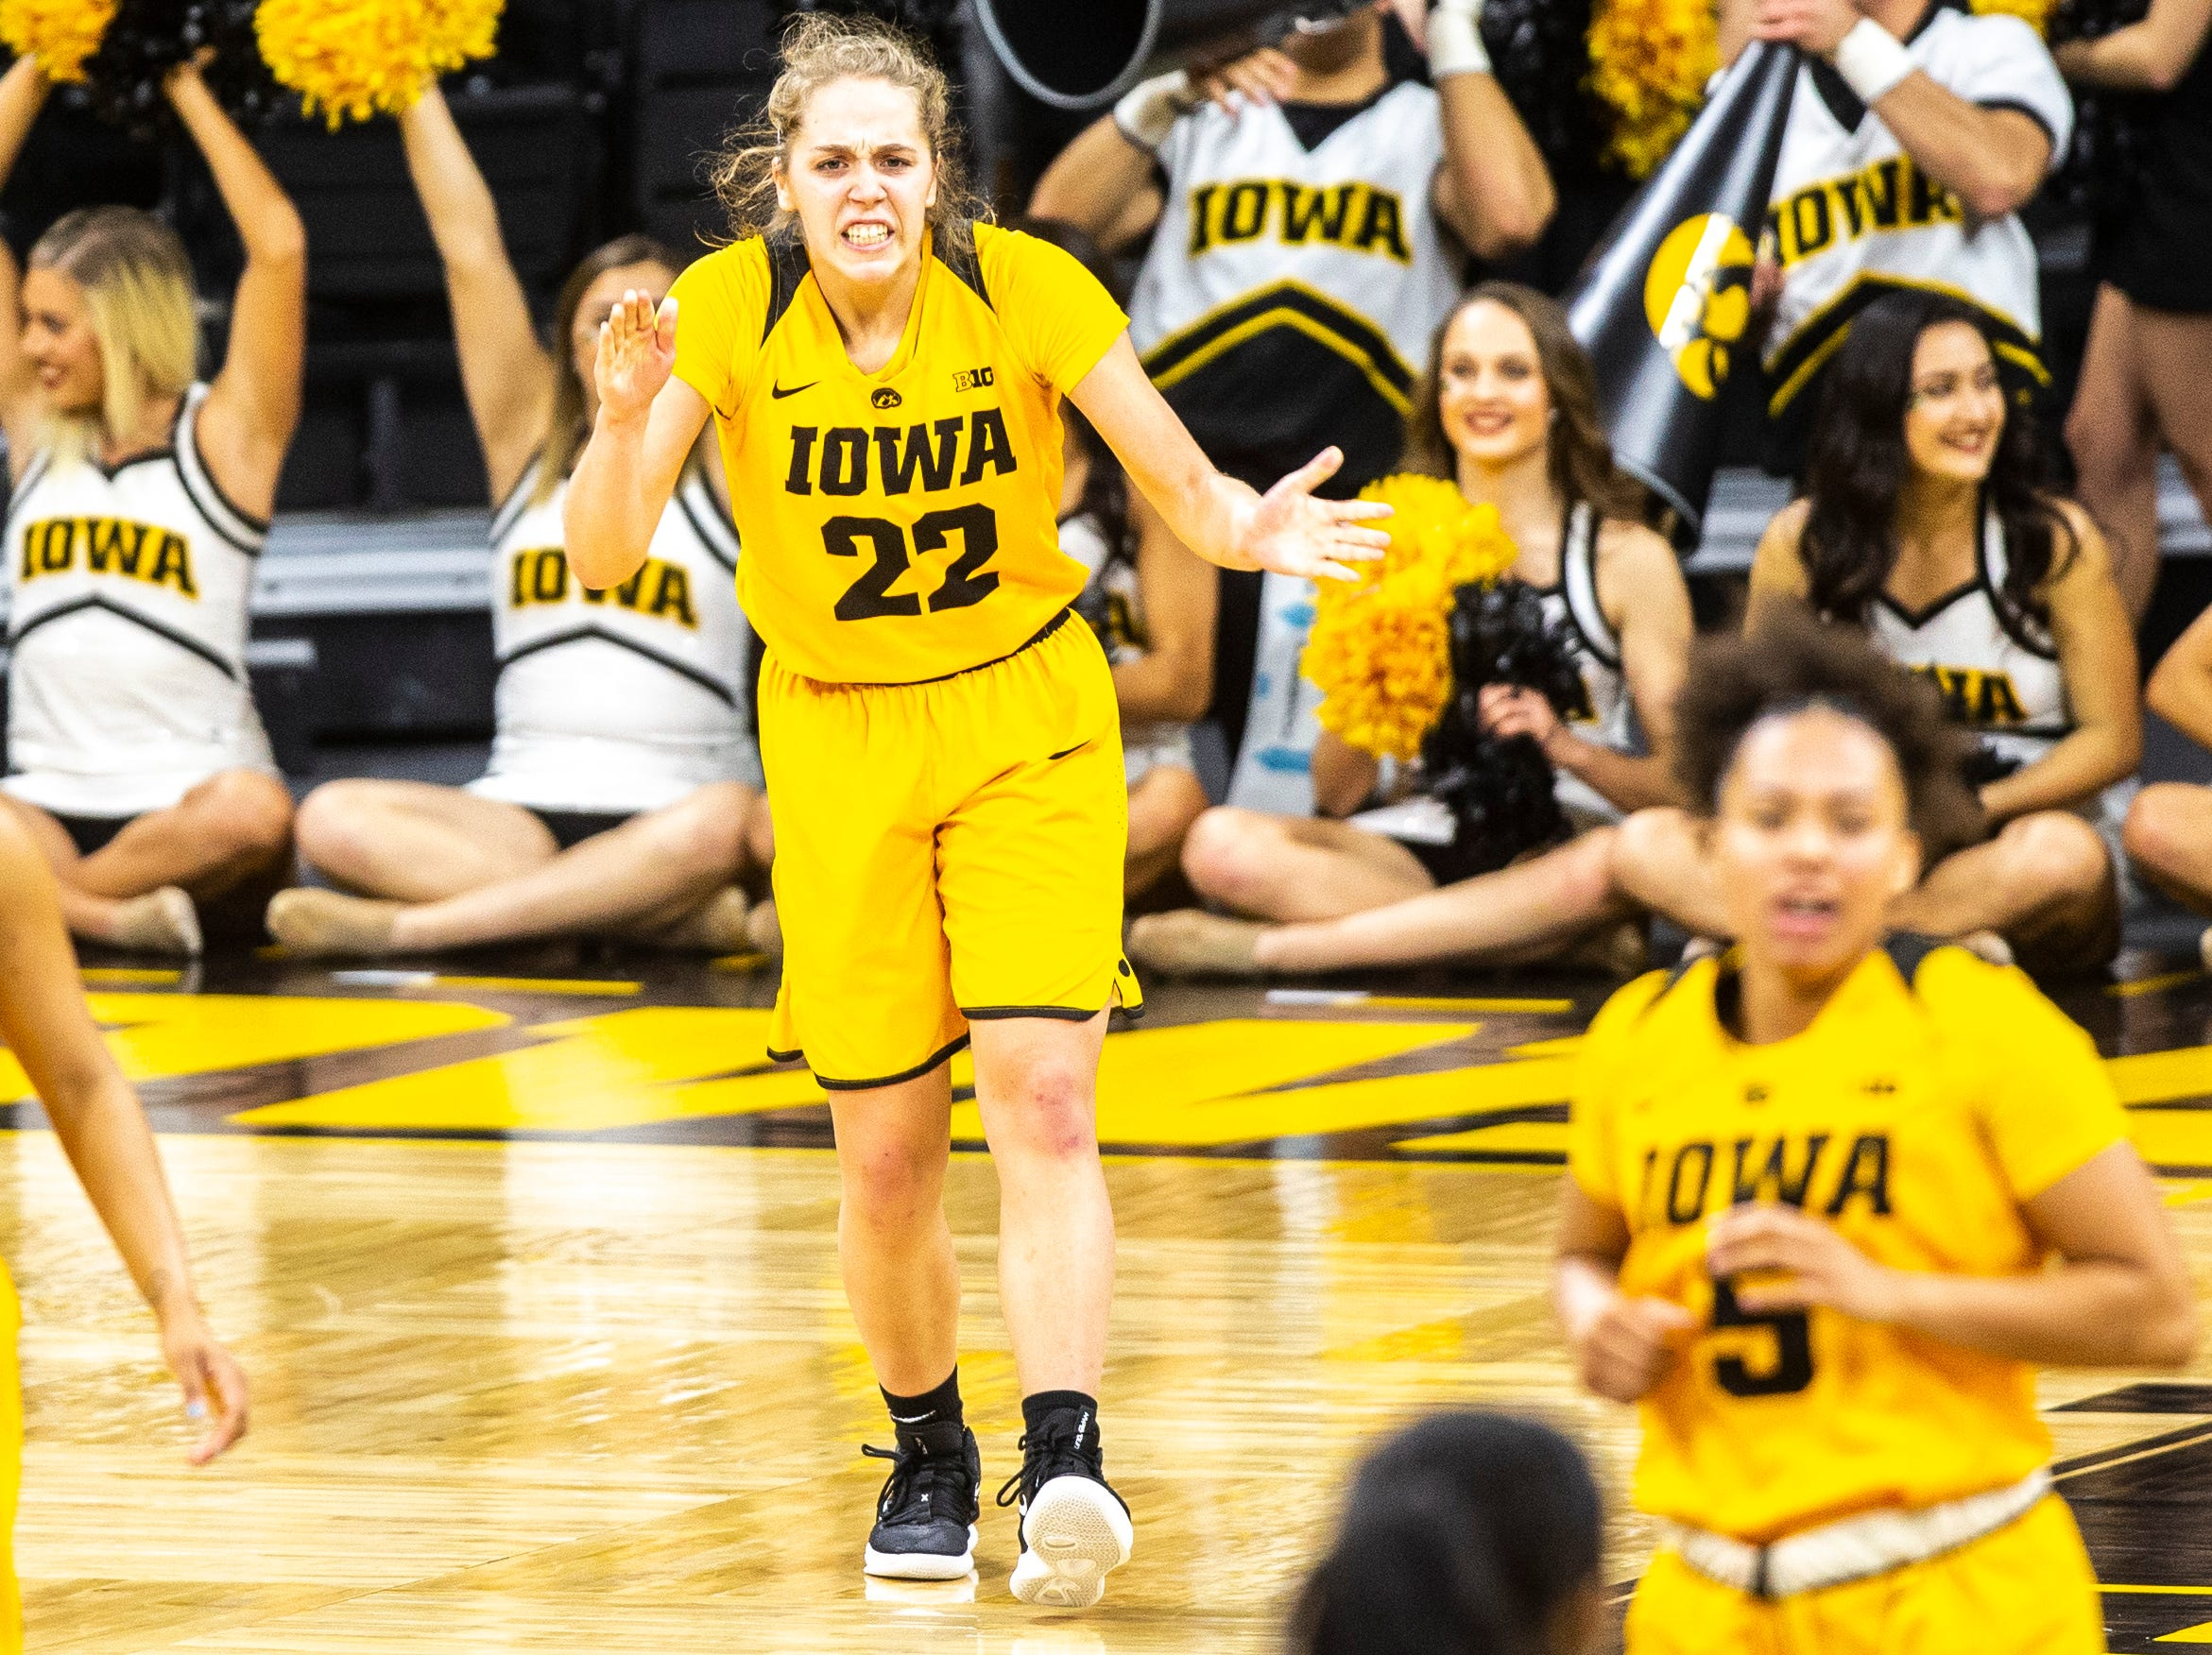 Iowa guard Kathleen Doyle (22) celebrates after making a shot during a NCAA Big Ten Conference women's basketball game on Thursday, Feb. 7, 2019 at Carver-Hawkeye Arena in Iowa City, Iowa.